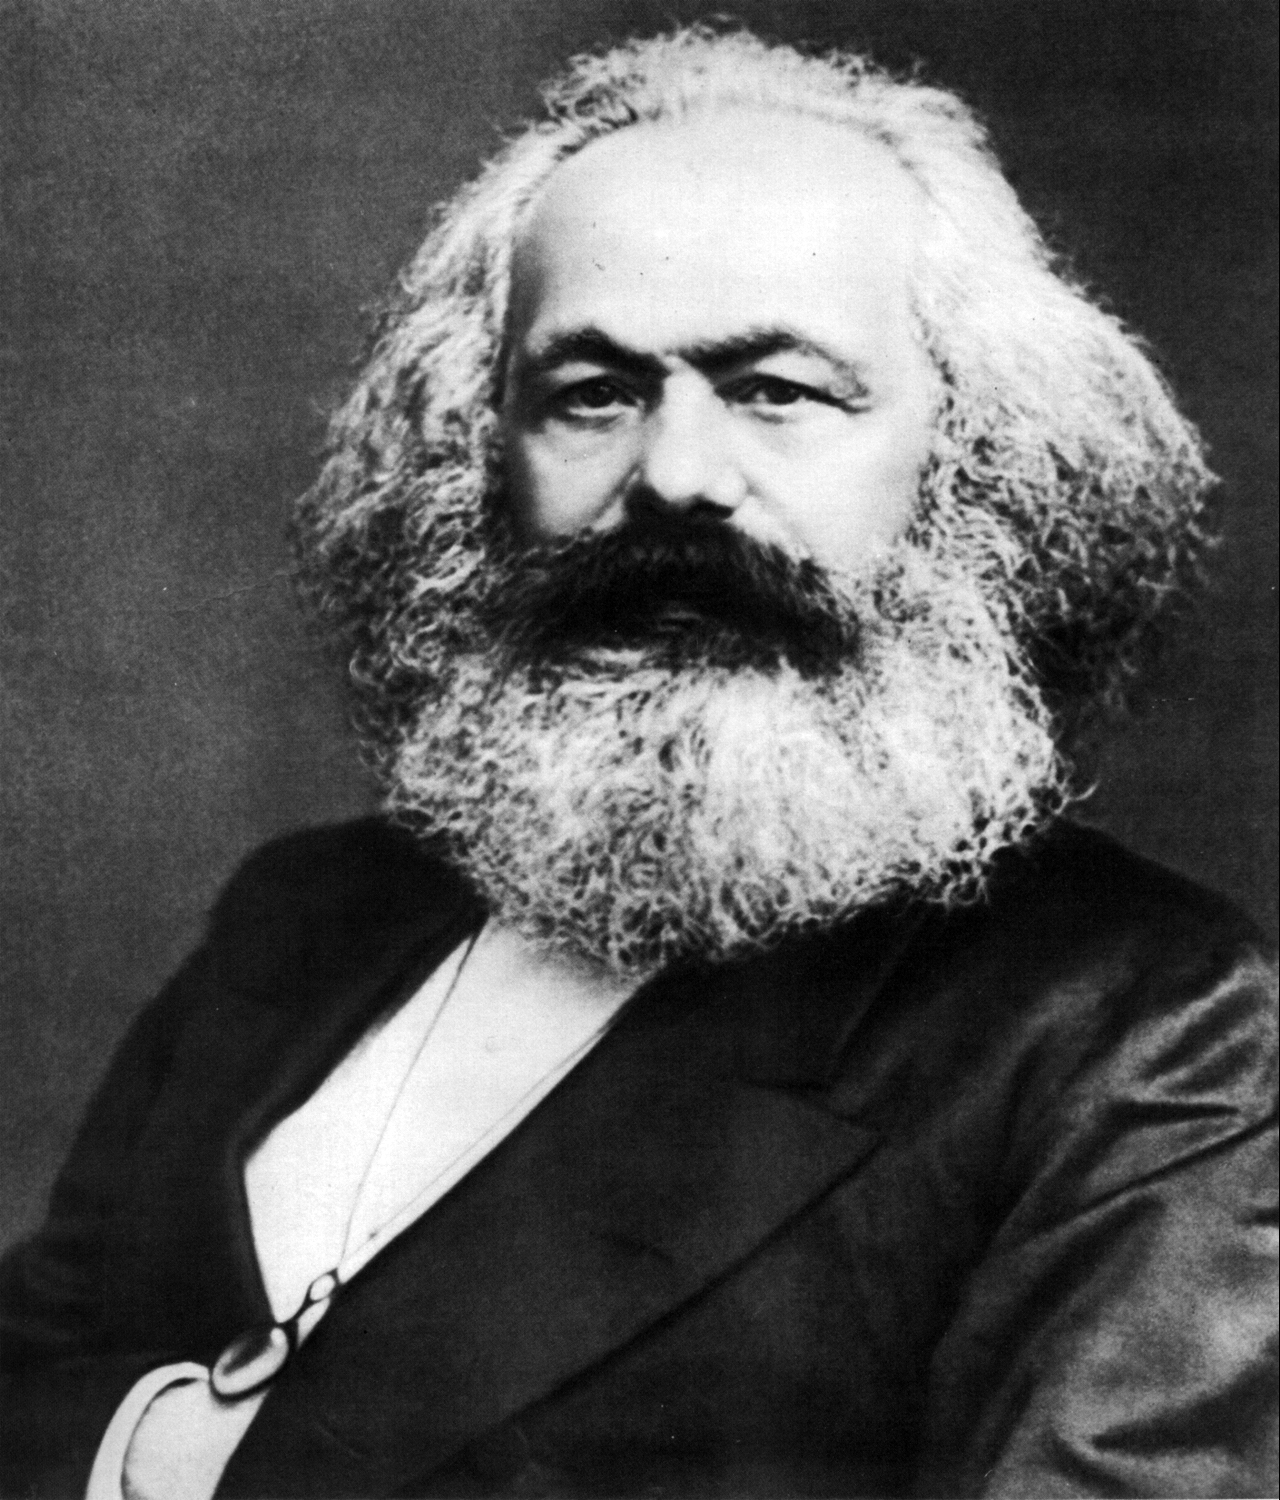 Marx' image from wikipedia